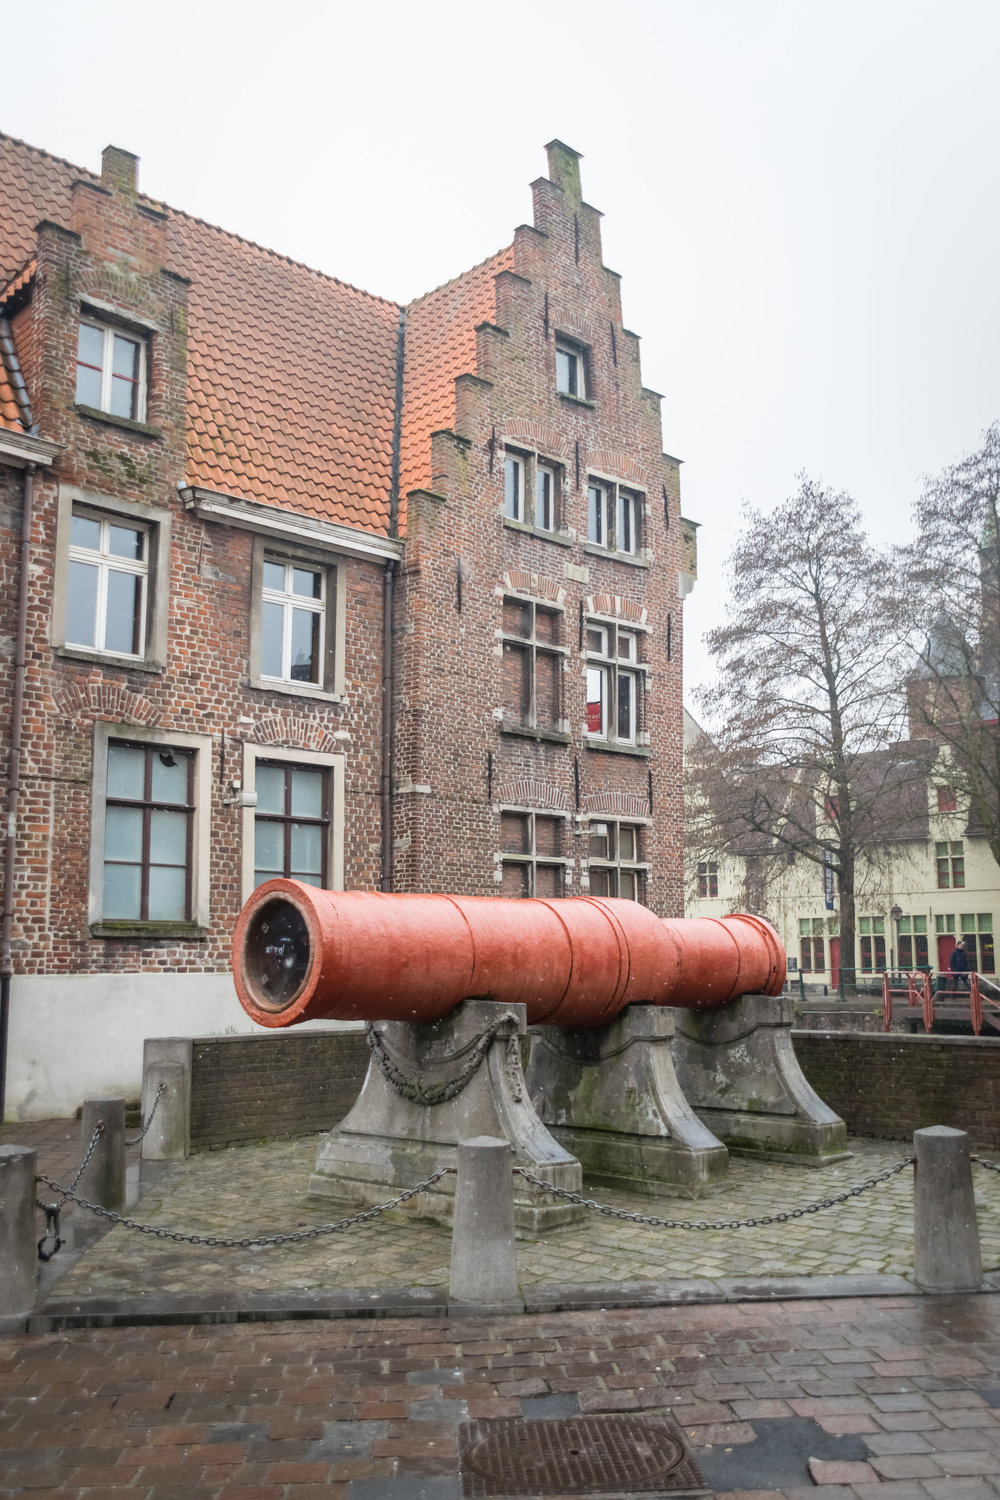 the dulle griet, or 'angry lady' cannon from the 16th century acquired to fight off the Spanish